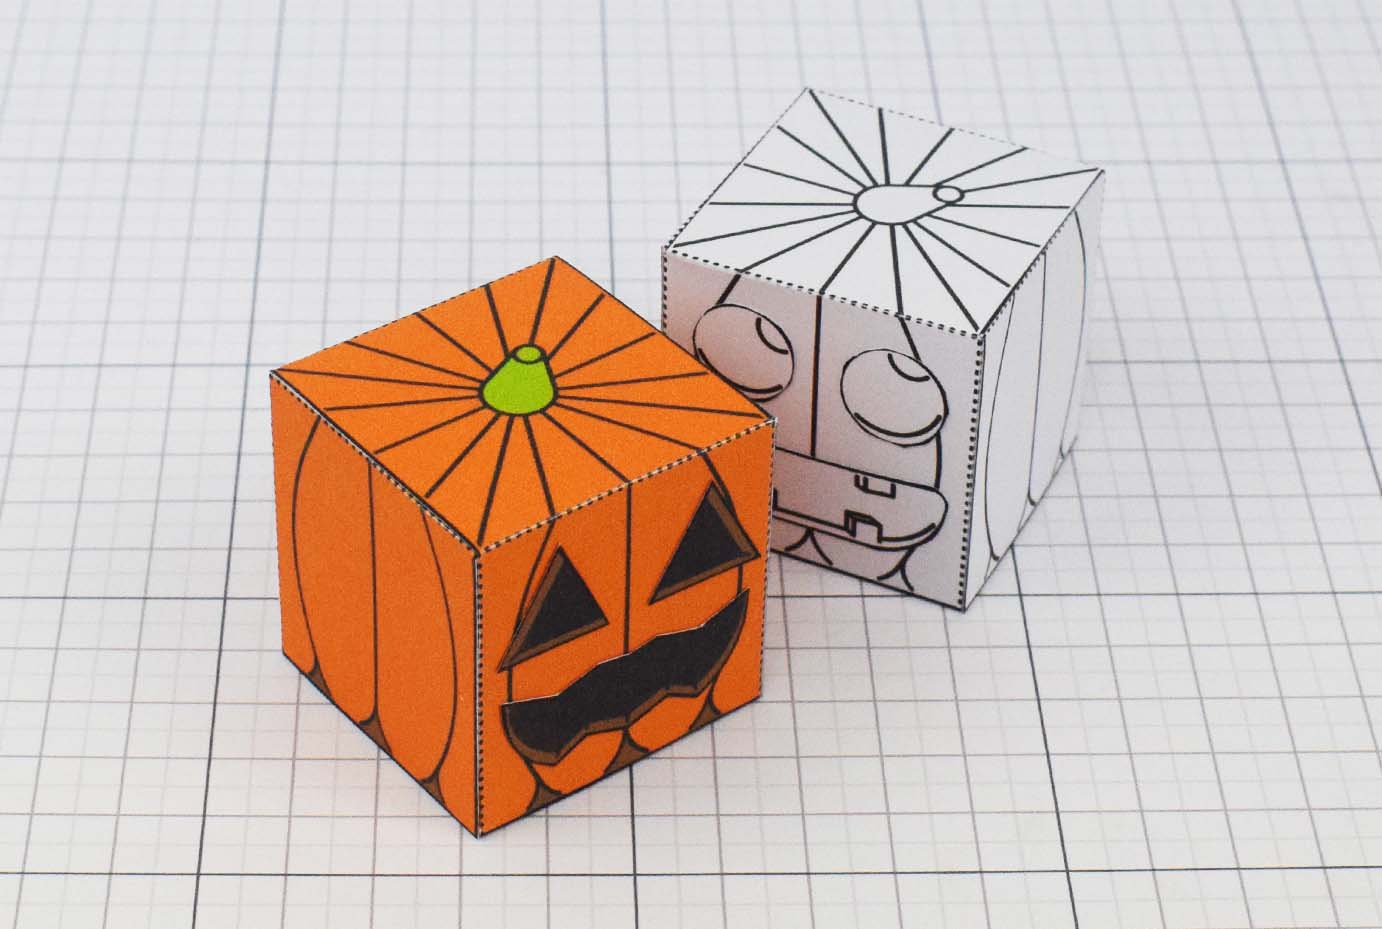 PTI Halloween Pumpkin Paper Toy Image - Main